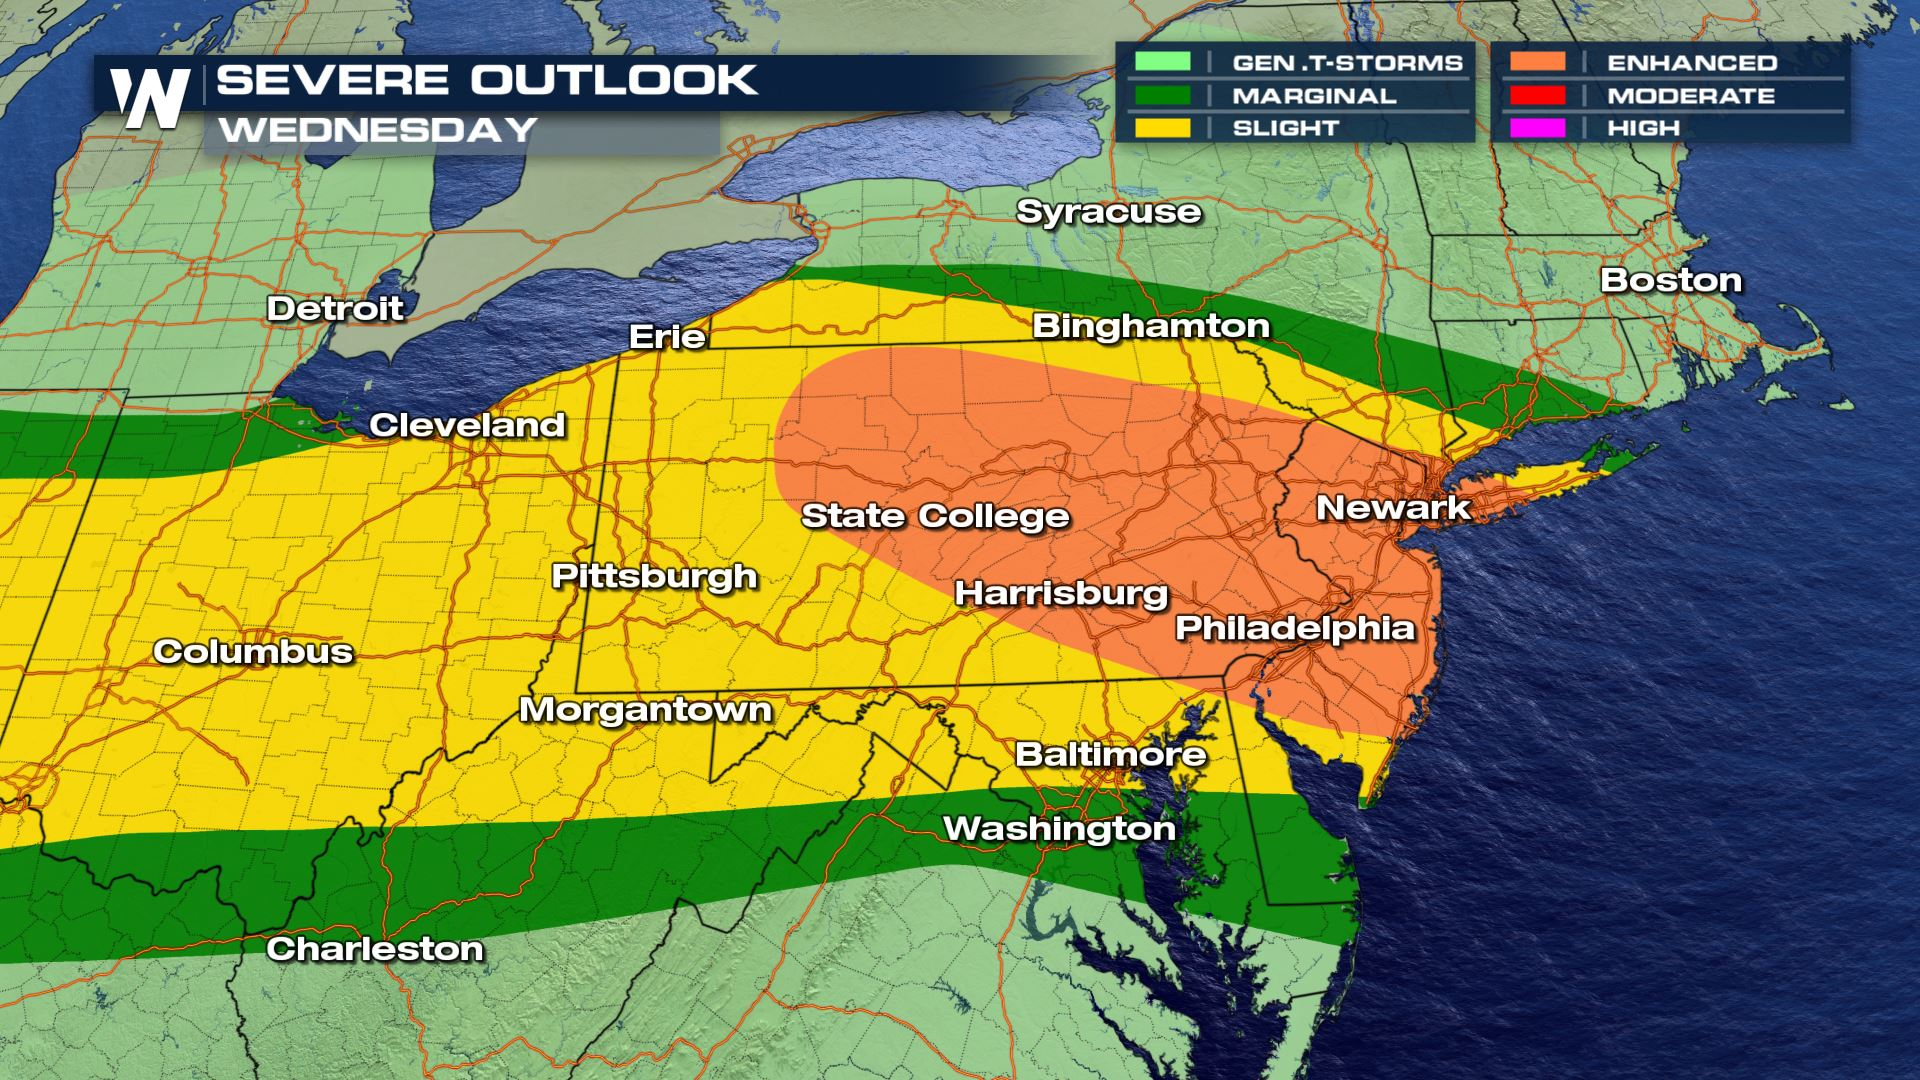 Elevated Risk for Severe Storms Wednesday